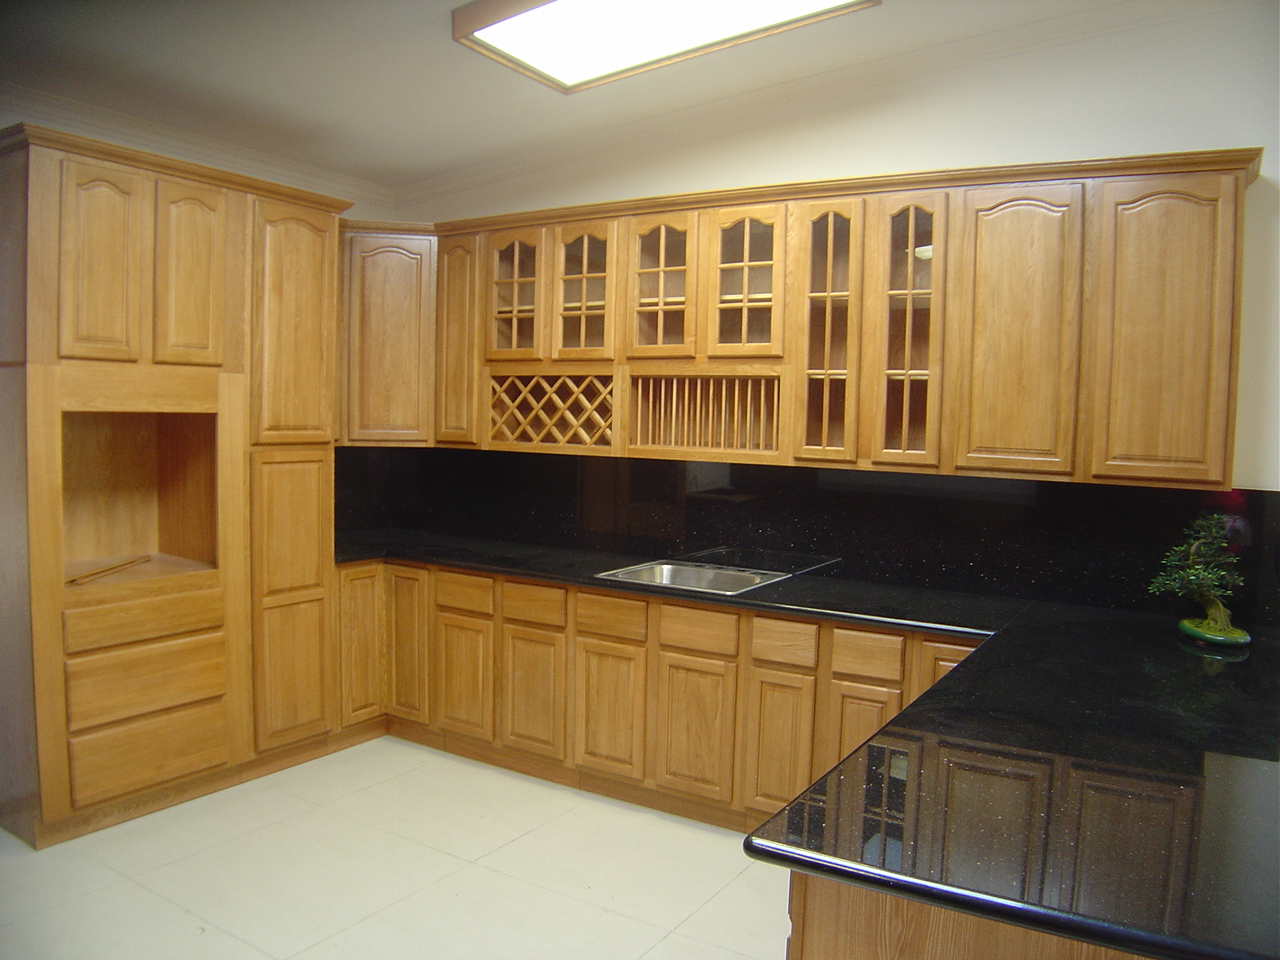 Oak kitchen cabinets for your interior kitchen minimalist for Kitchen designs photos